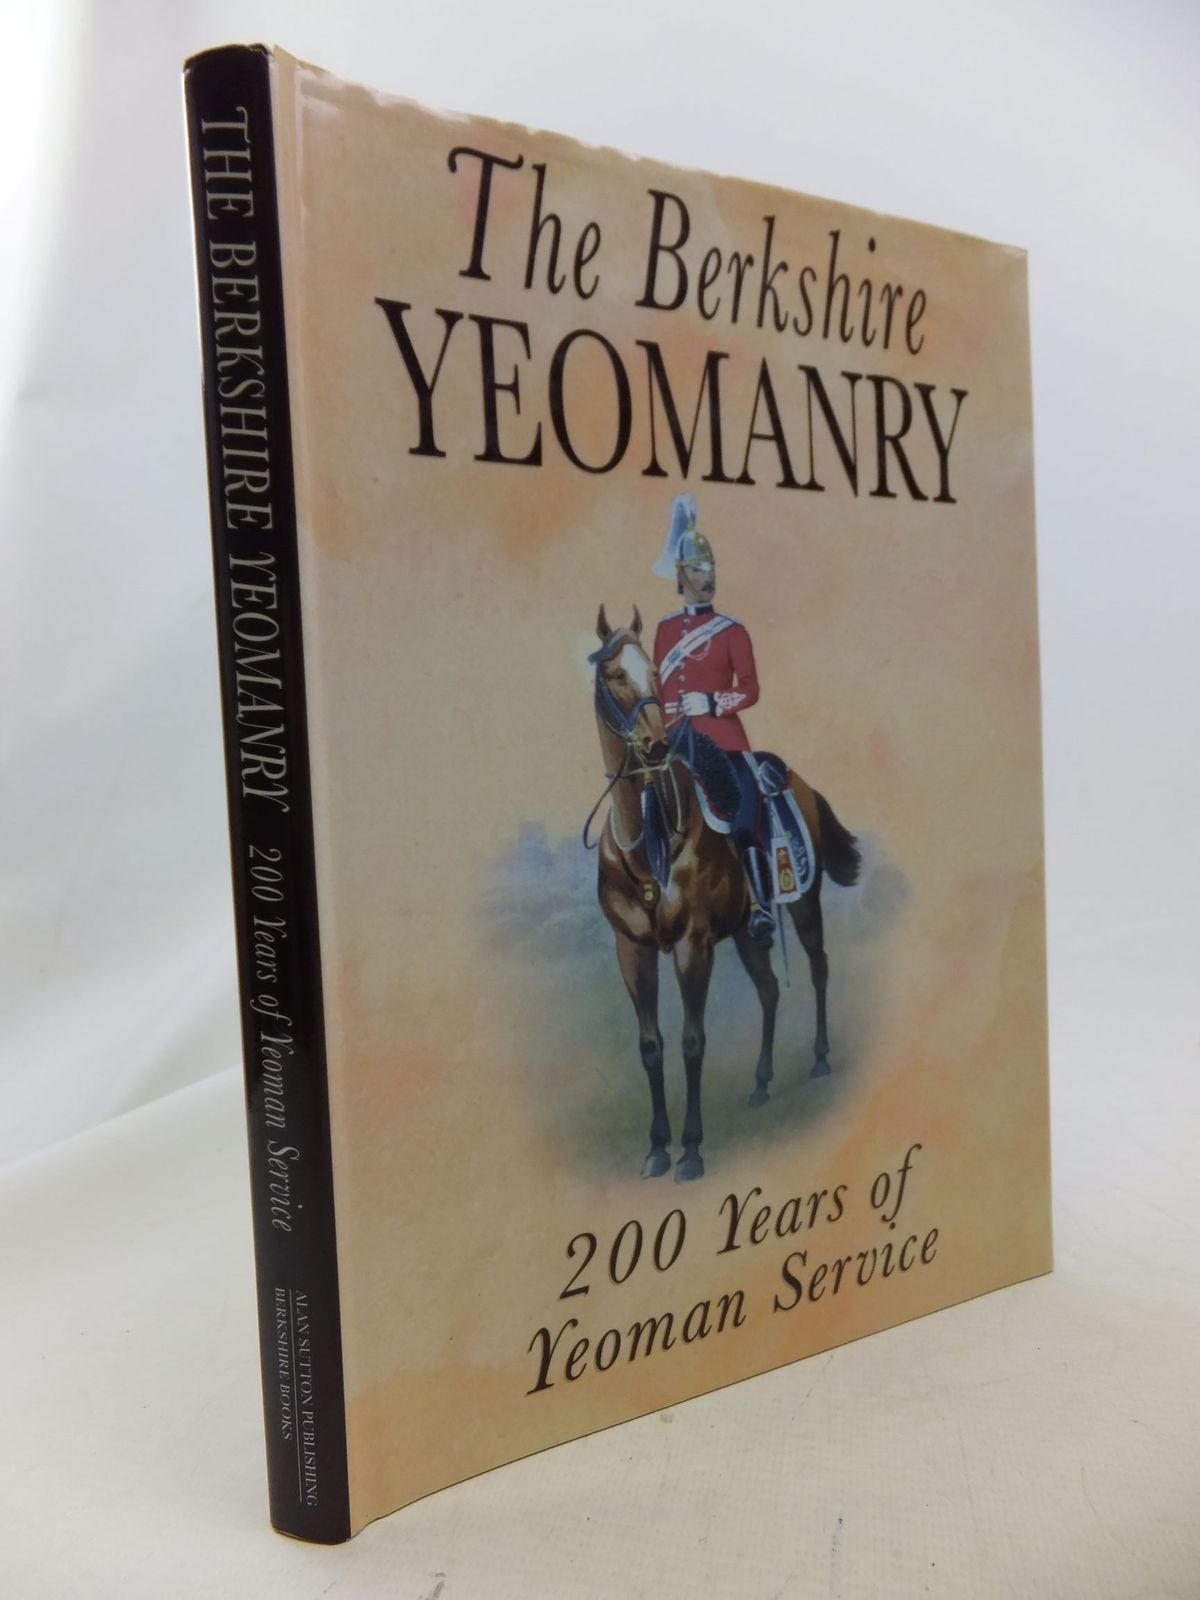 Photo of THE BERKSHIRE YEOMANRY 200 YEARS OF YEOMAN SERVICE written by Verey, Anthony Sampson, Stuart French, Andrew Frost, Simon published by Alan Sutton (STOCK CODE: 2114548)  for sale by Stella & Rose's Books